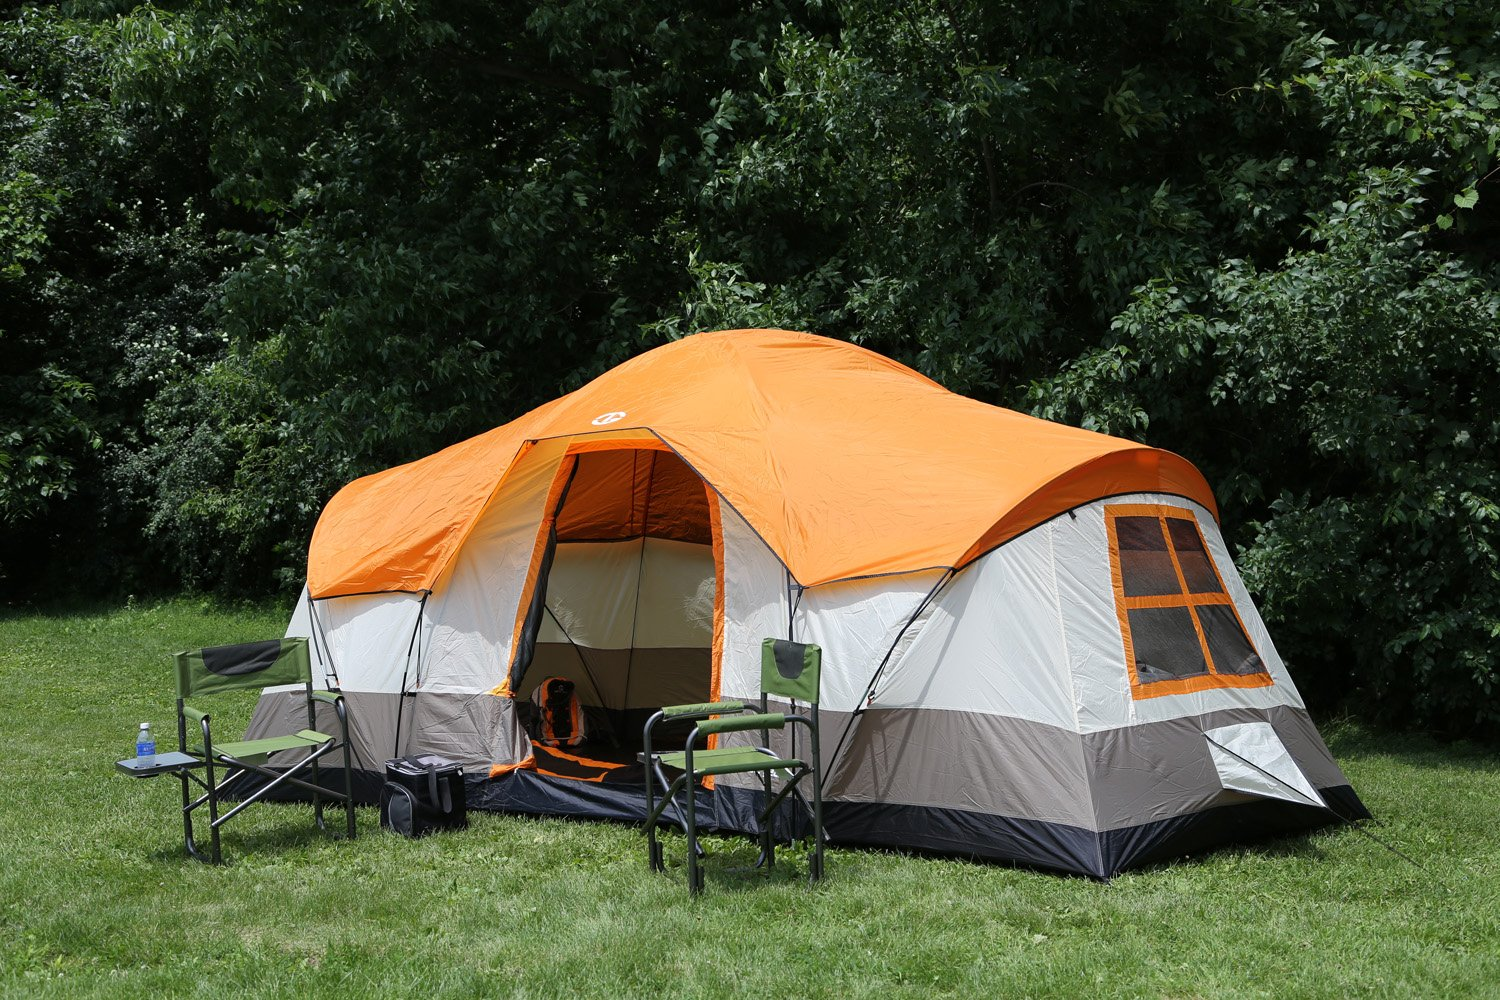 Top 14 Best 10-Person Tents in 2020 Reviews Sport & Outdoor